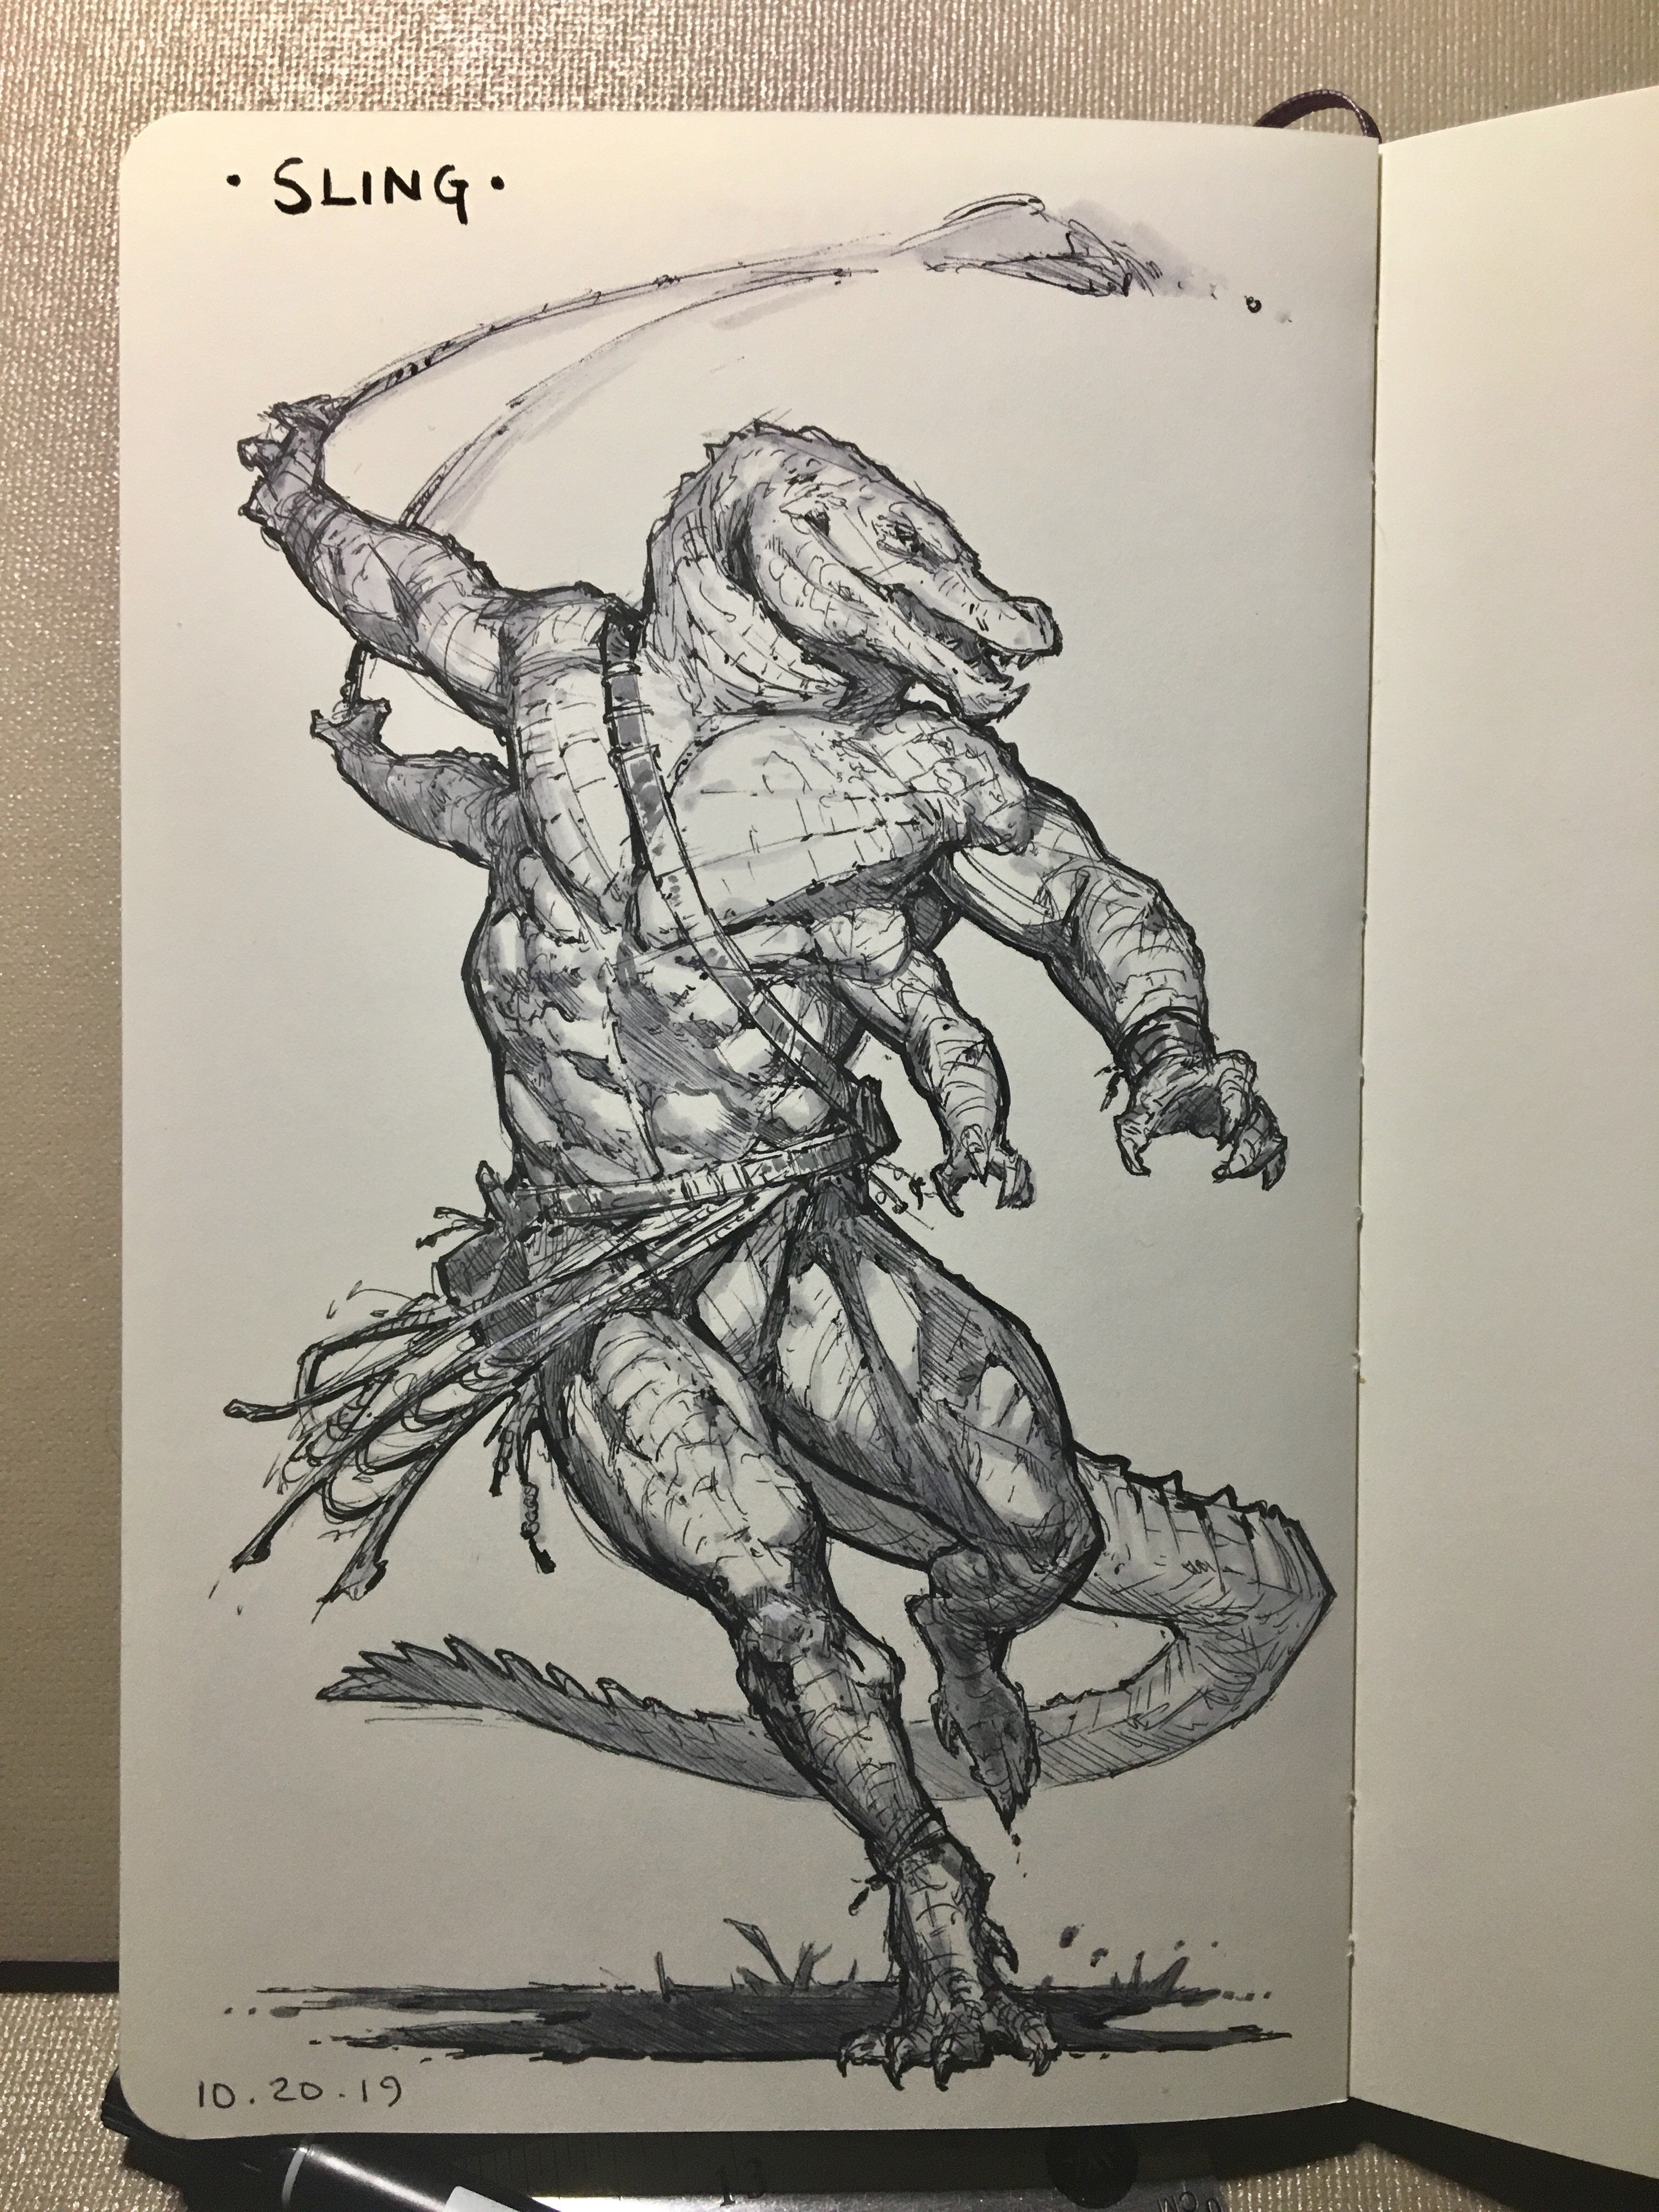 Day 19 of inktober 2019! Sling! Outta the way for the Four armed Gator dude!!😱🐊 What is it with me and the four armed characters right now? 😅